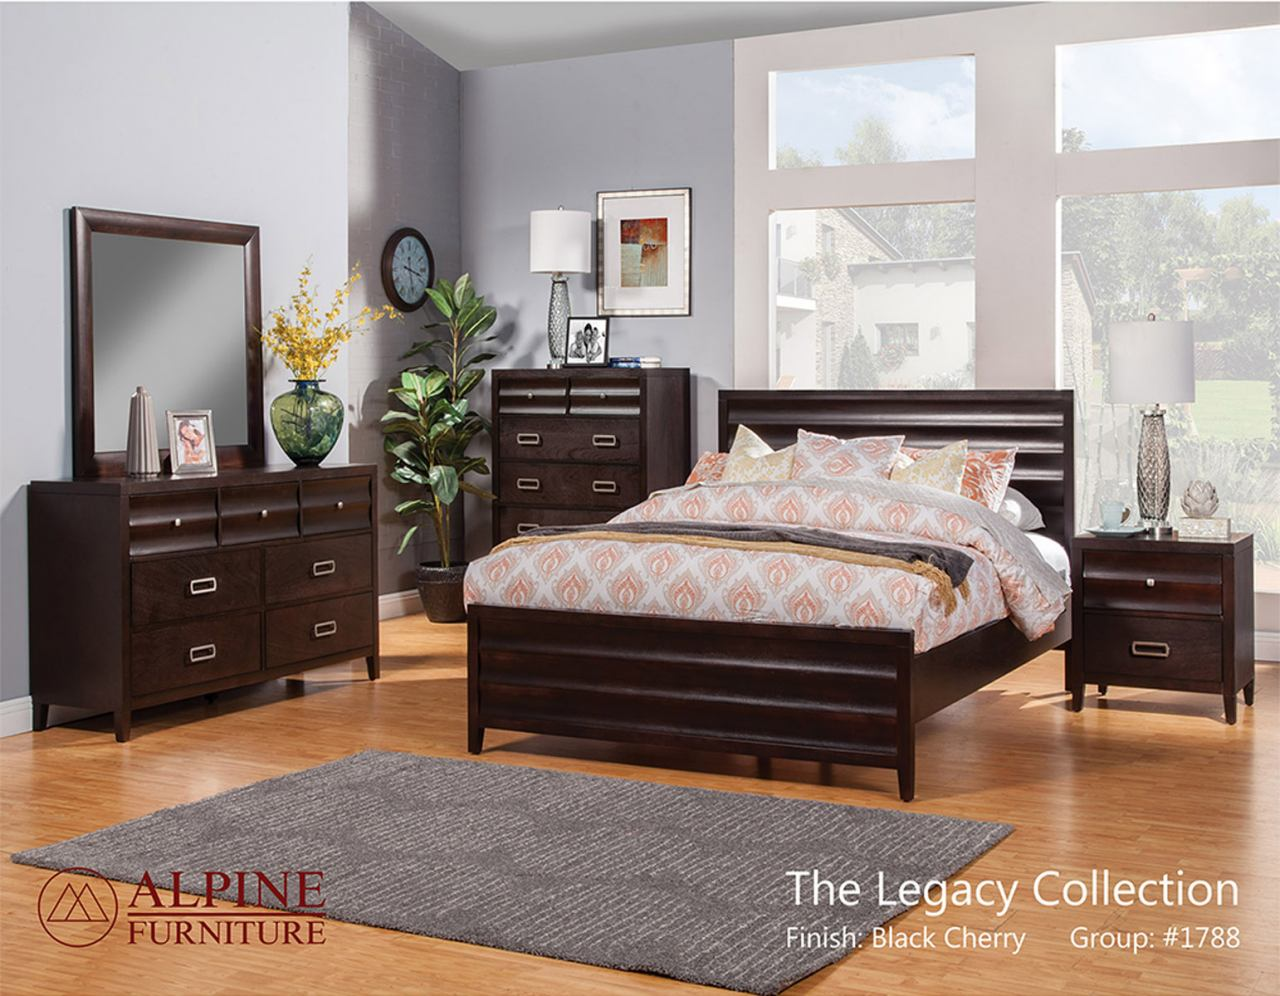 Alpine Furniture Legacy 4-Piece Panel Bedroom Set in Black Cherry